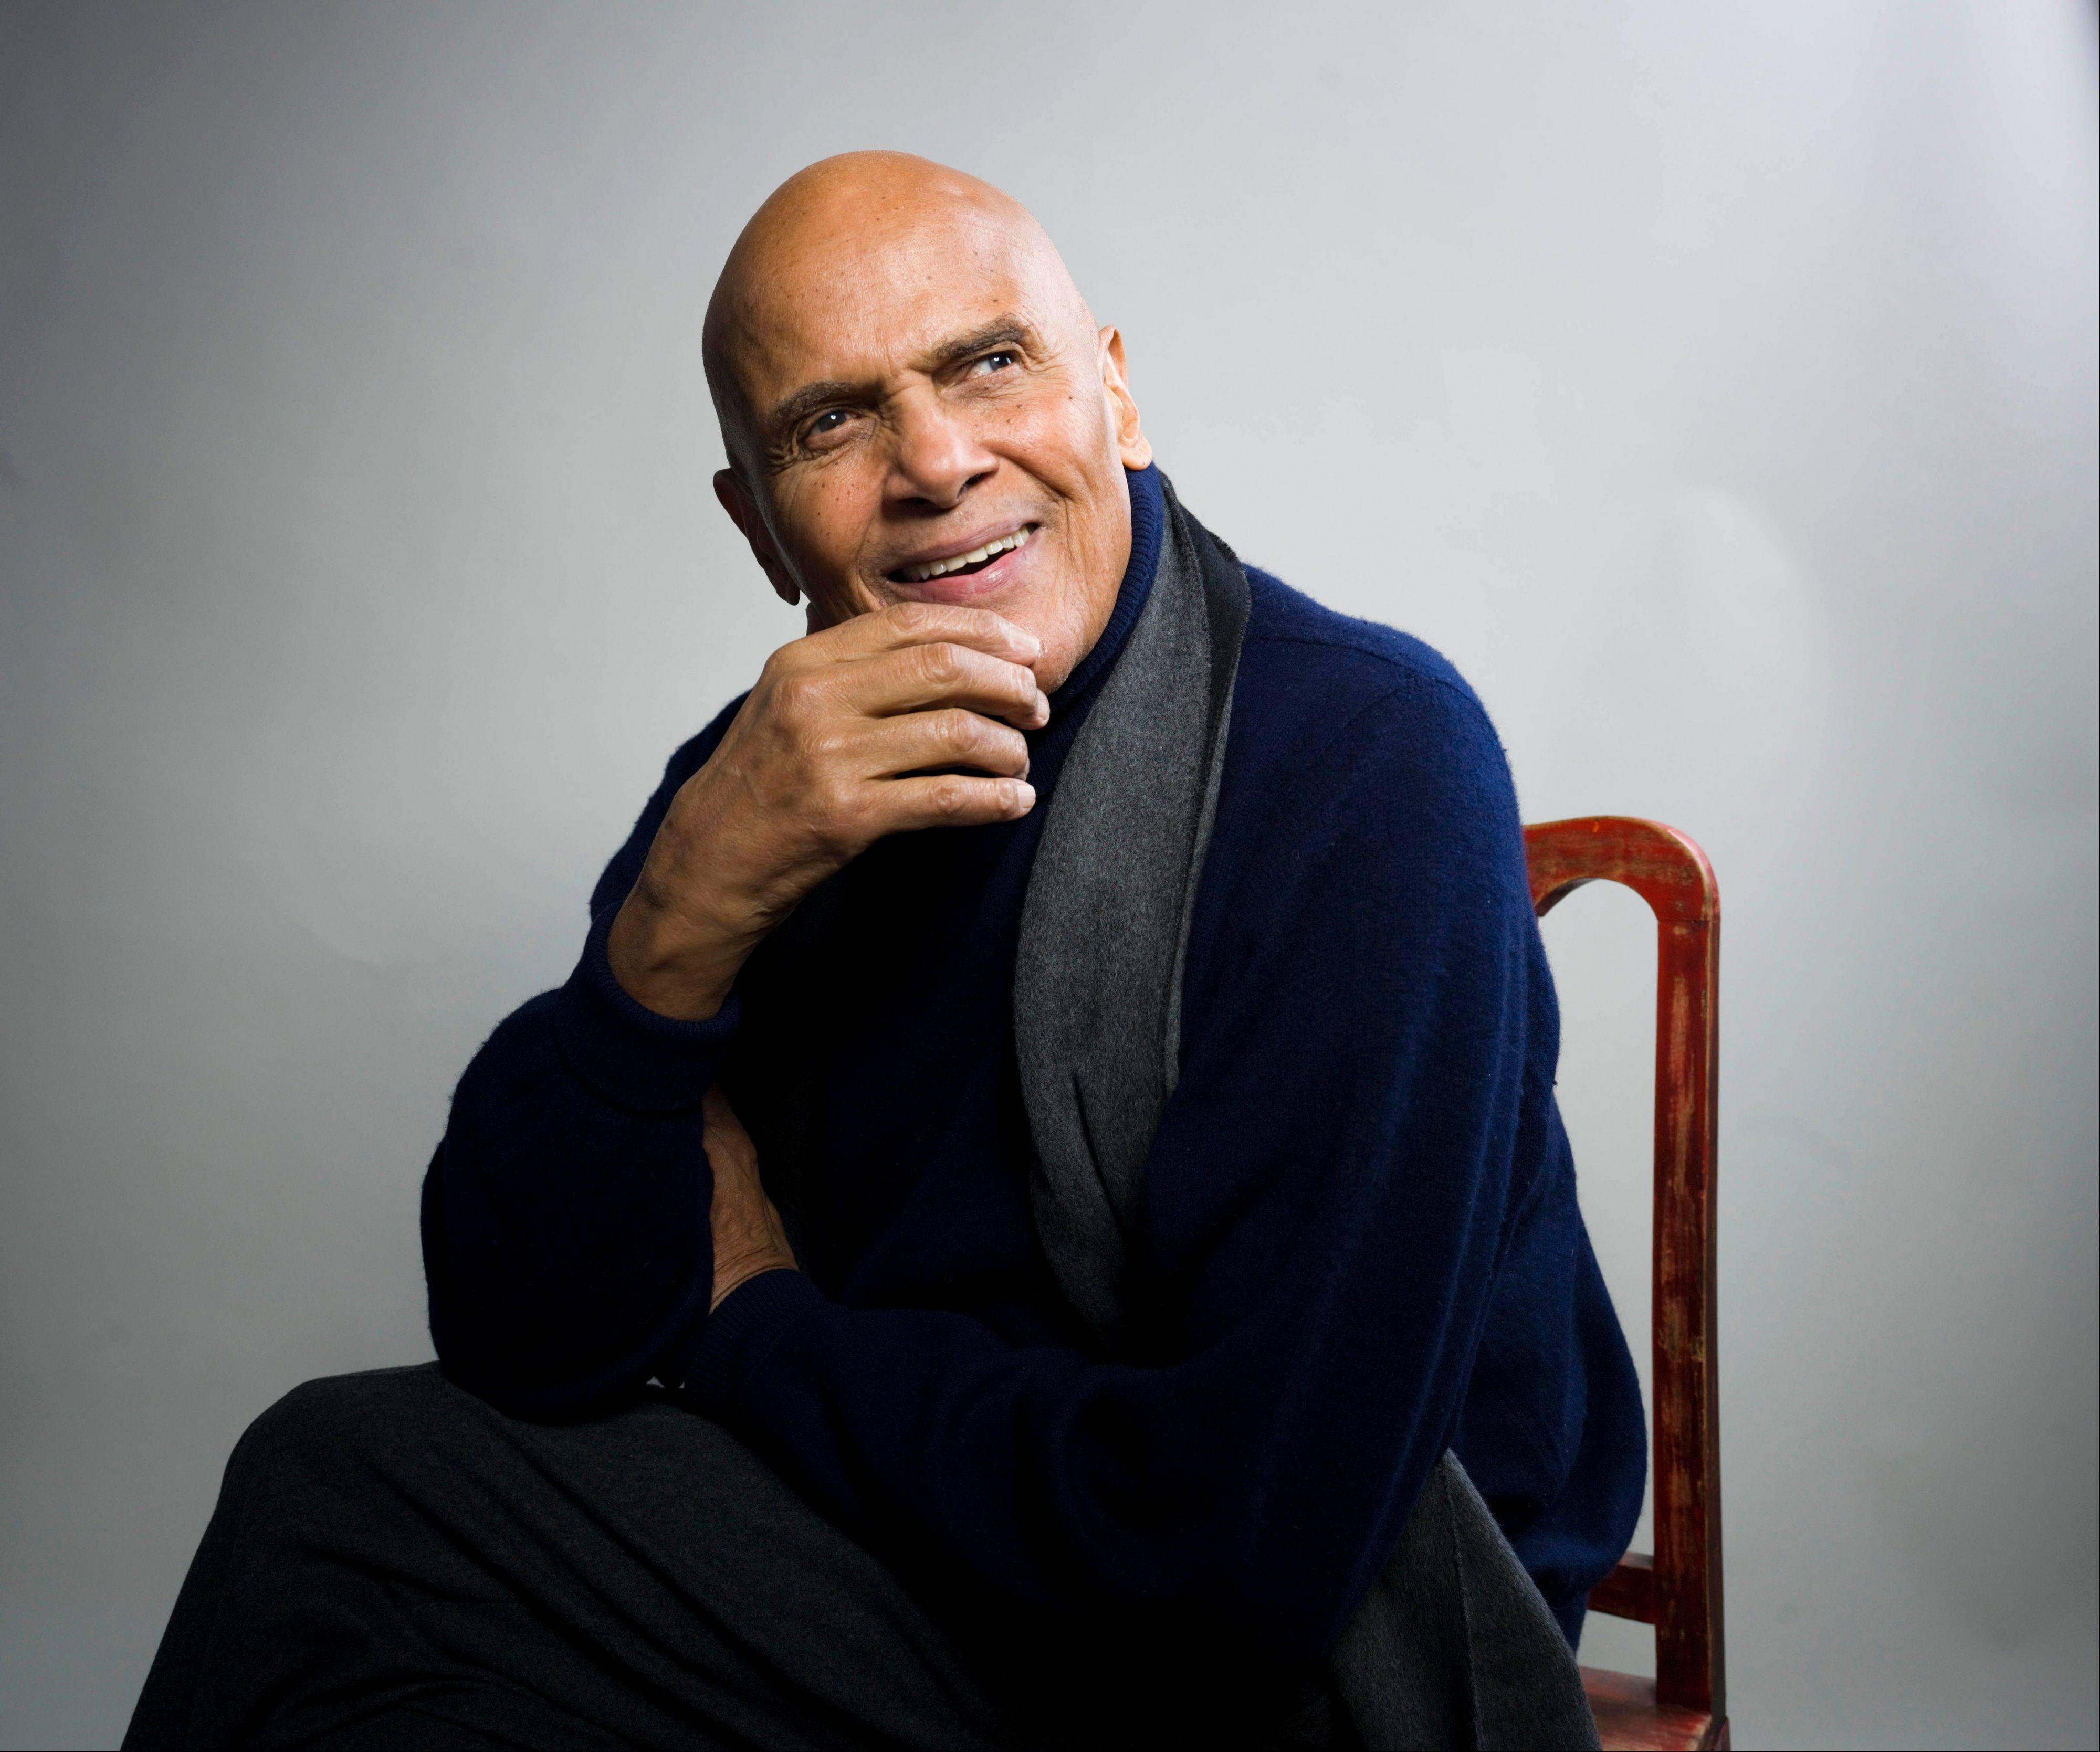 Actor, singer and activist Harry Belafonte is the keynote speaker for Northwestern University's celebratory events this month in honor of Martin Luther King Jr.